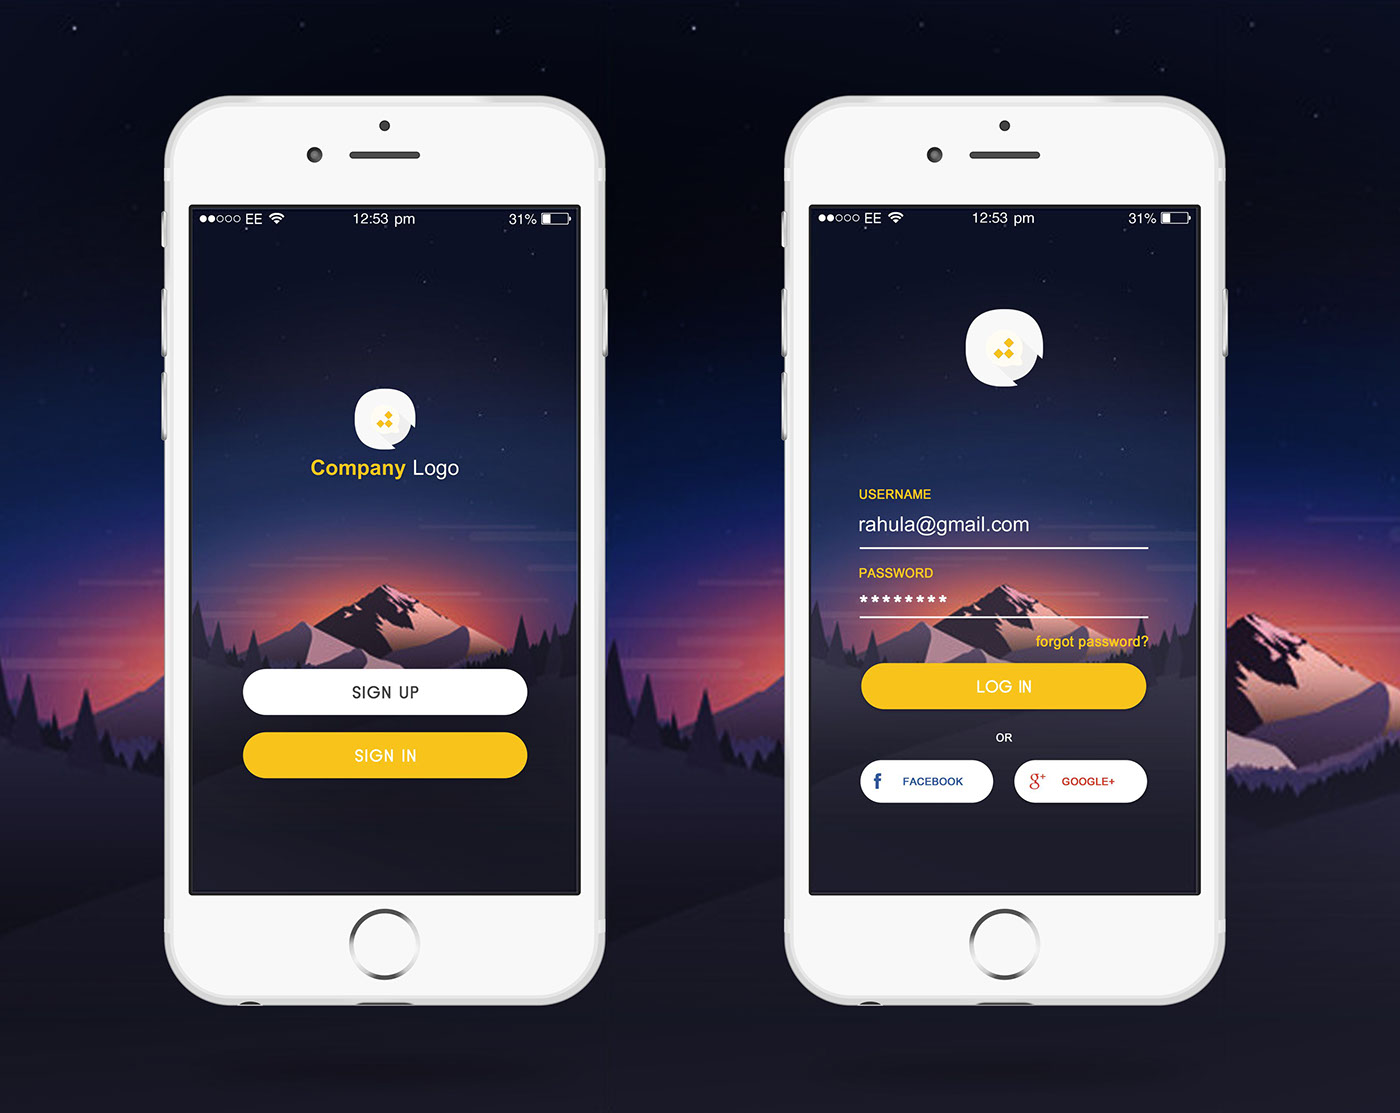 Login Page Design For iOS Application